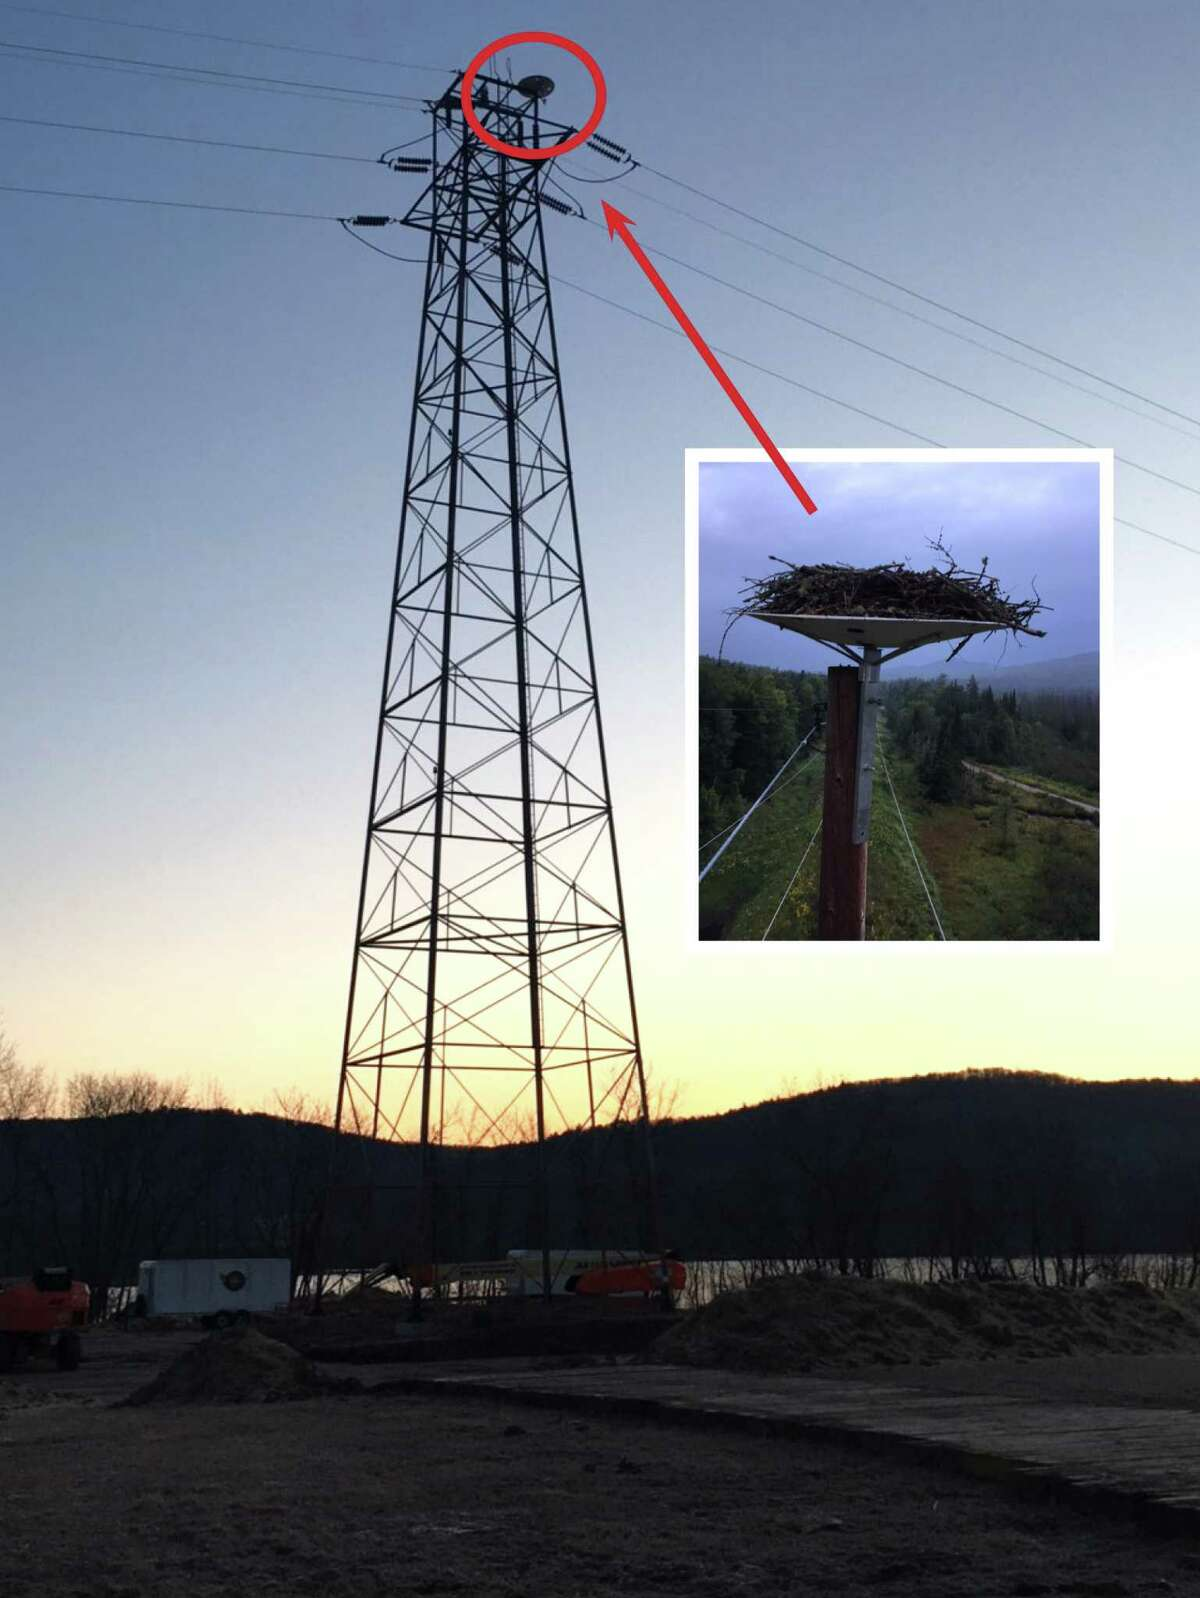 A finished Osprey platform sits above where the transmission wire connects to the tower. The inset photo is a detailed look at another nest relocated by National Grid on another set of power lines. National Grid has environmental scientists on staff to help with the process of moving the nests, which is done in consultation with the state Department of Environmental Conservation (DEC) and the U.S. Fish and Wildlife Service. (National Grid photos)